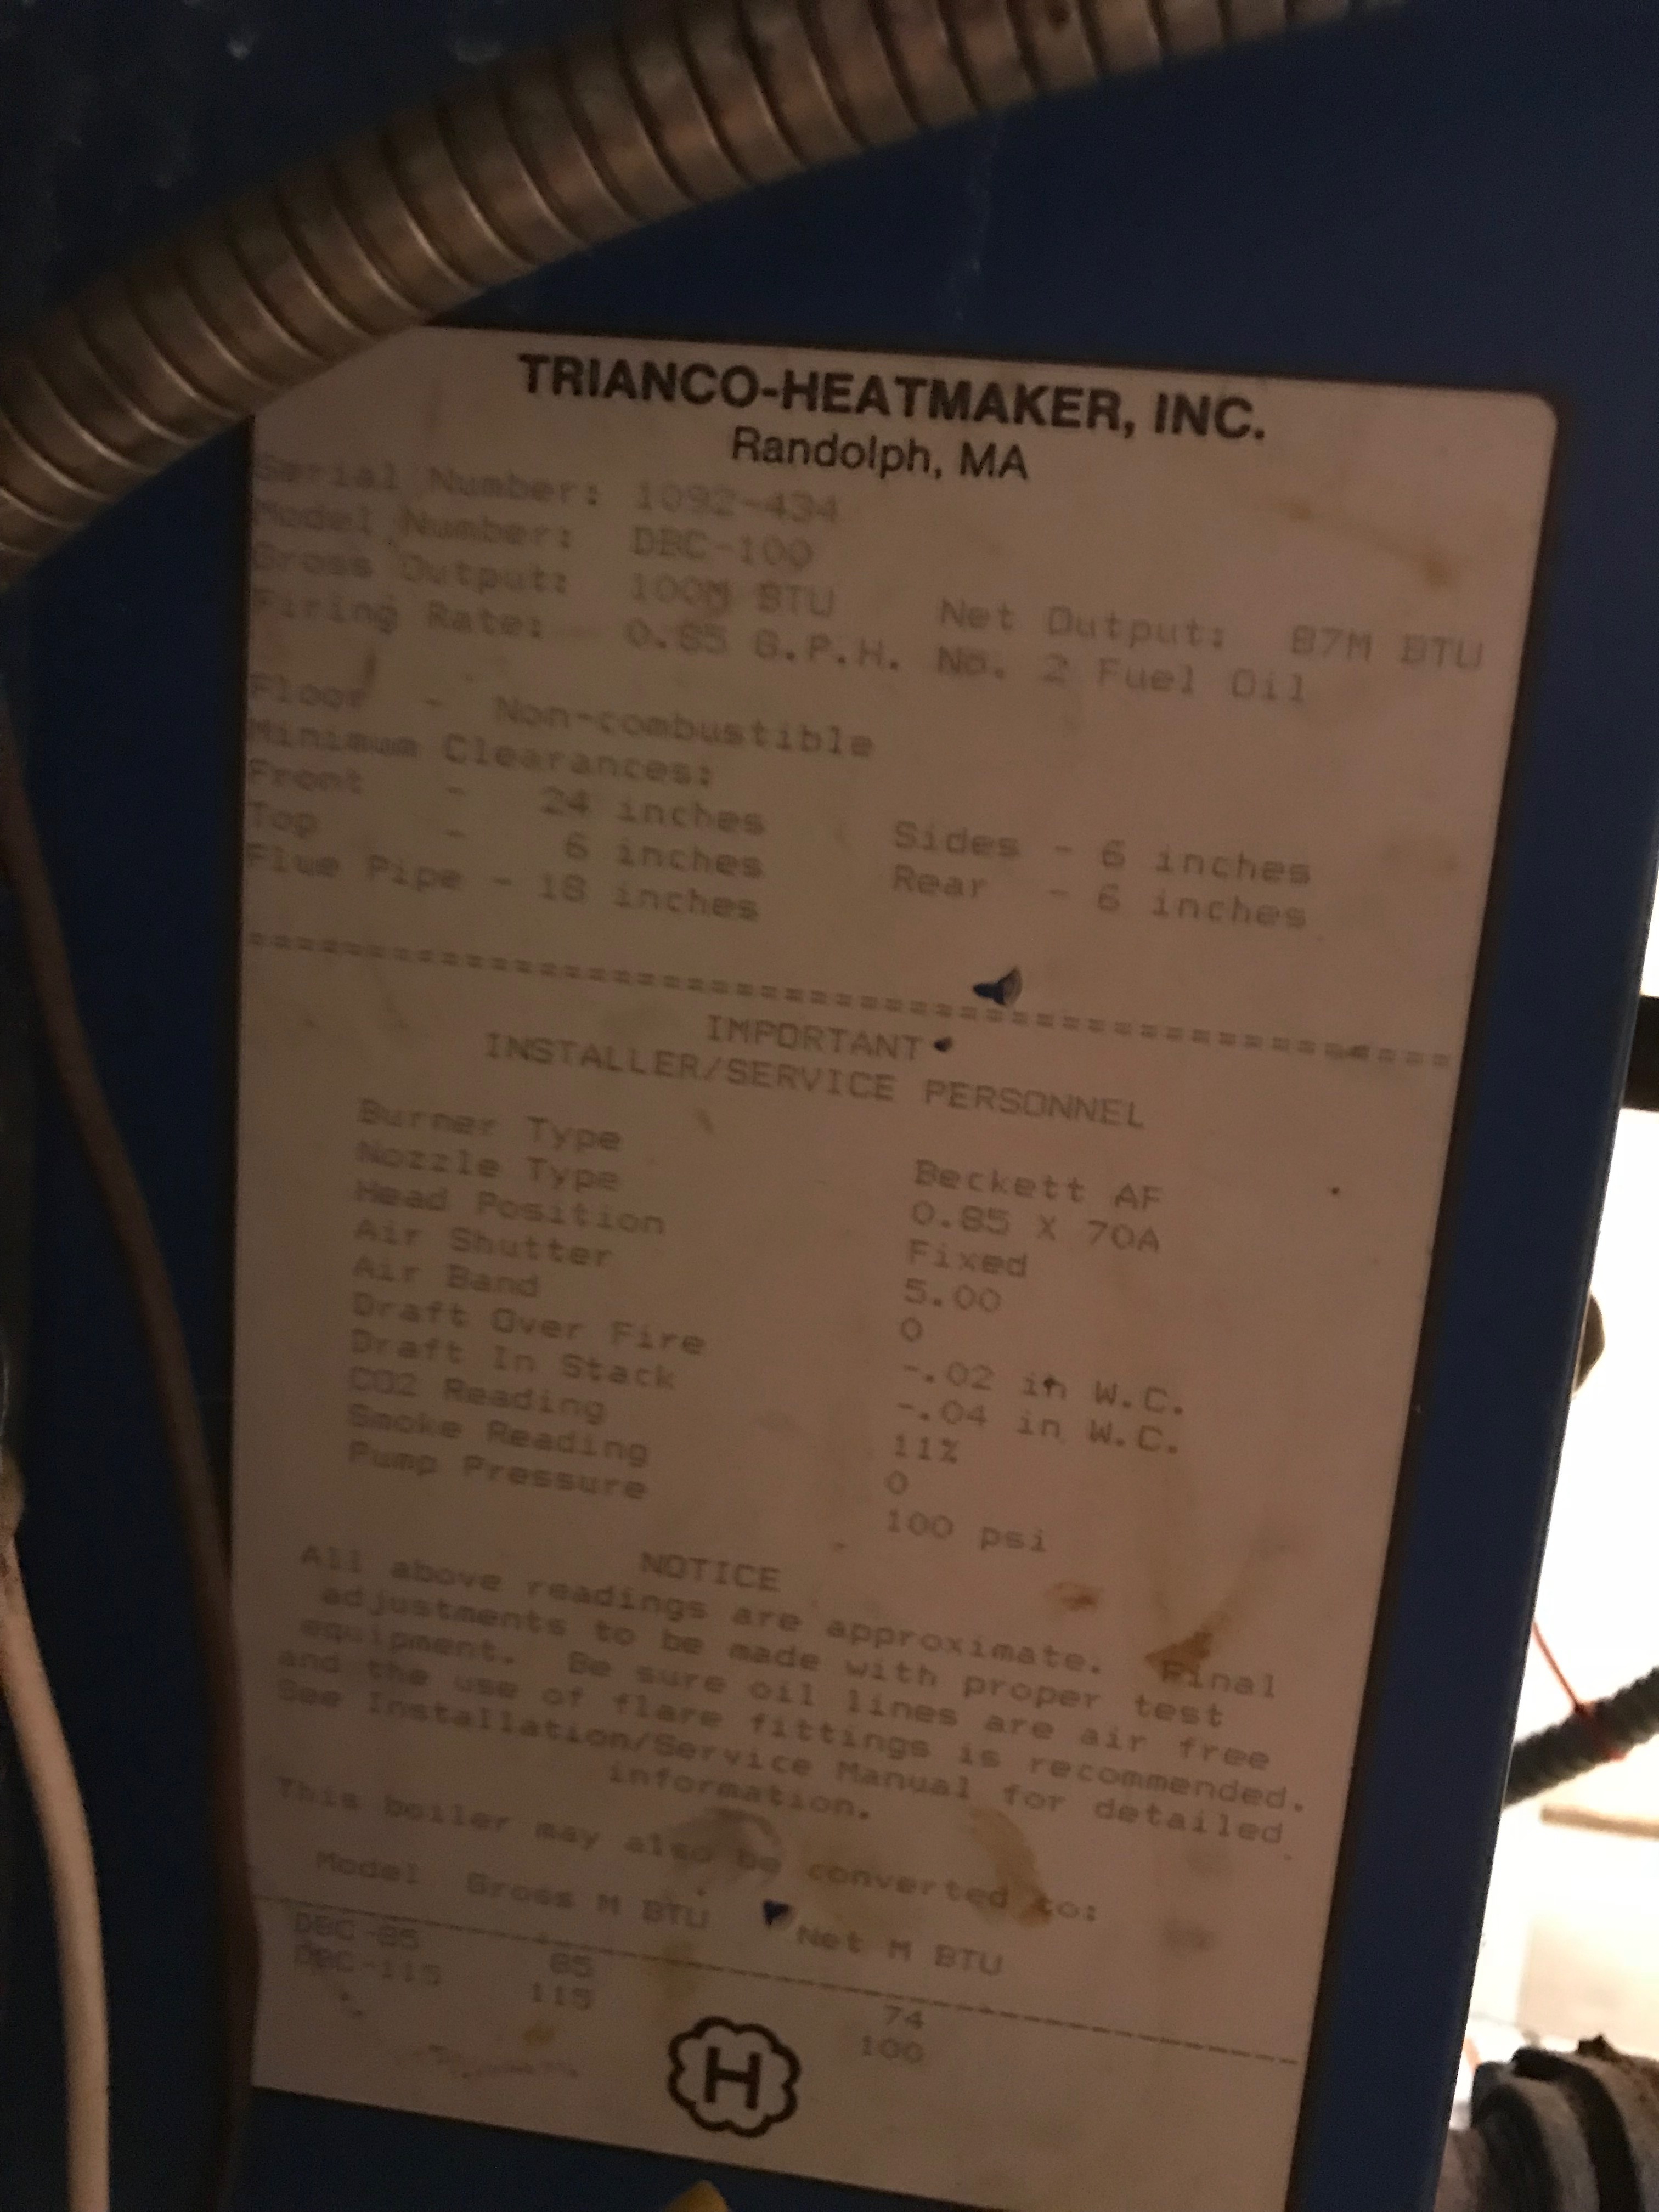 Oil Heating Help The Wall Pennco Boiler Wiring Diagram Thanks In Advance